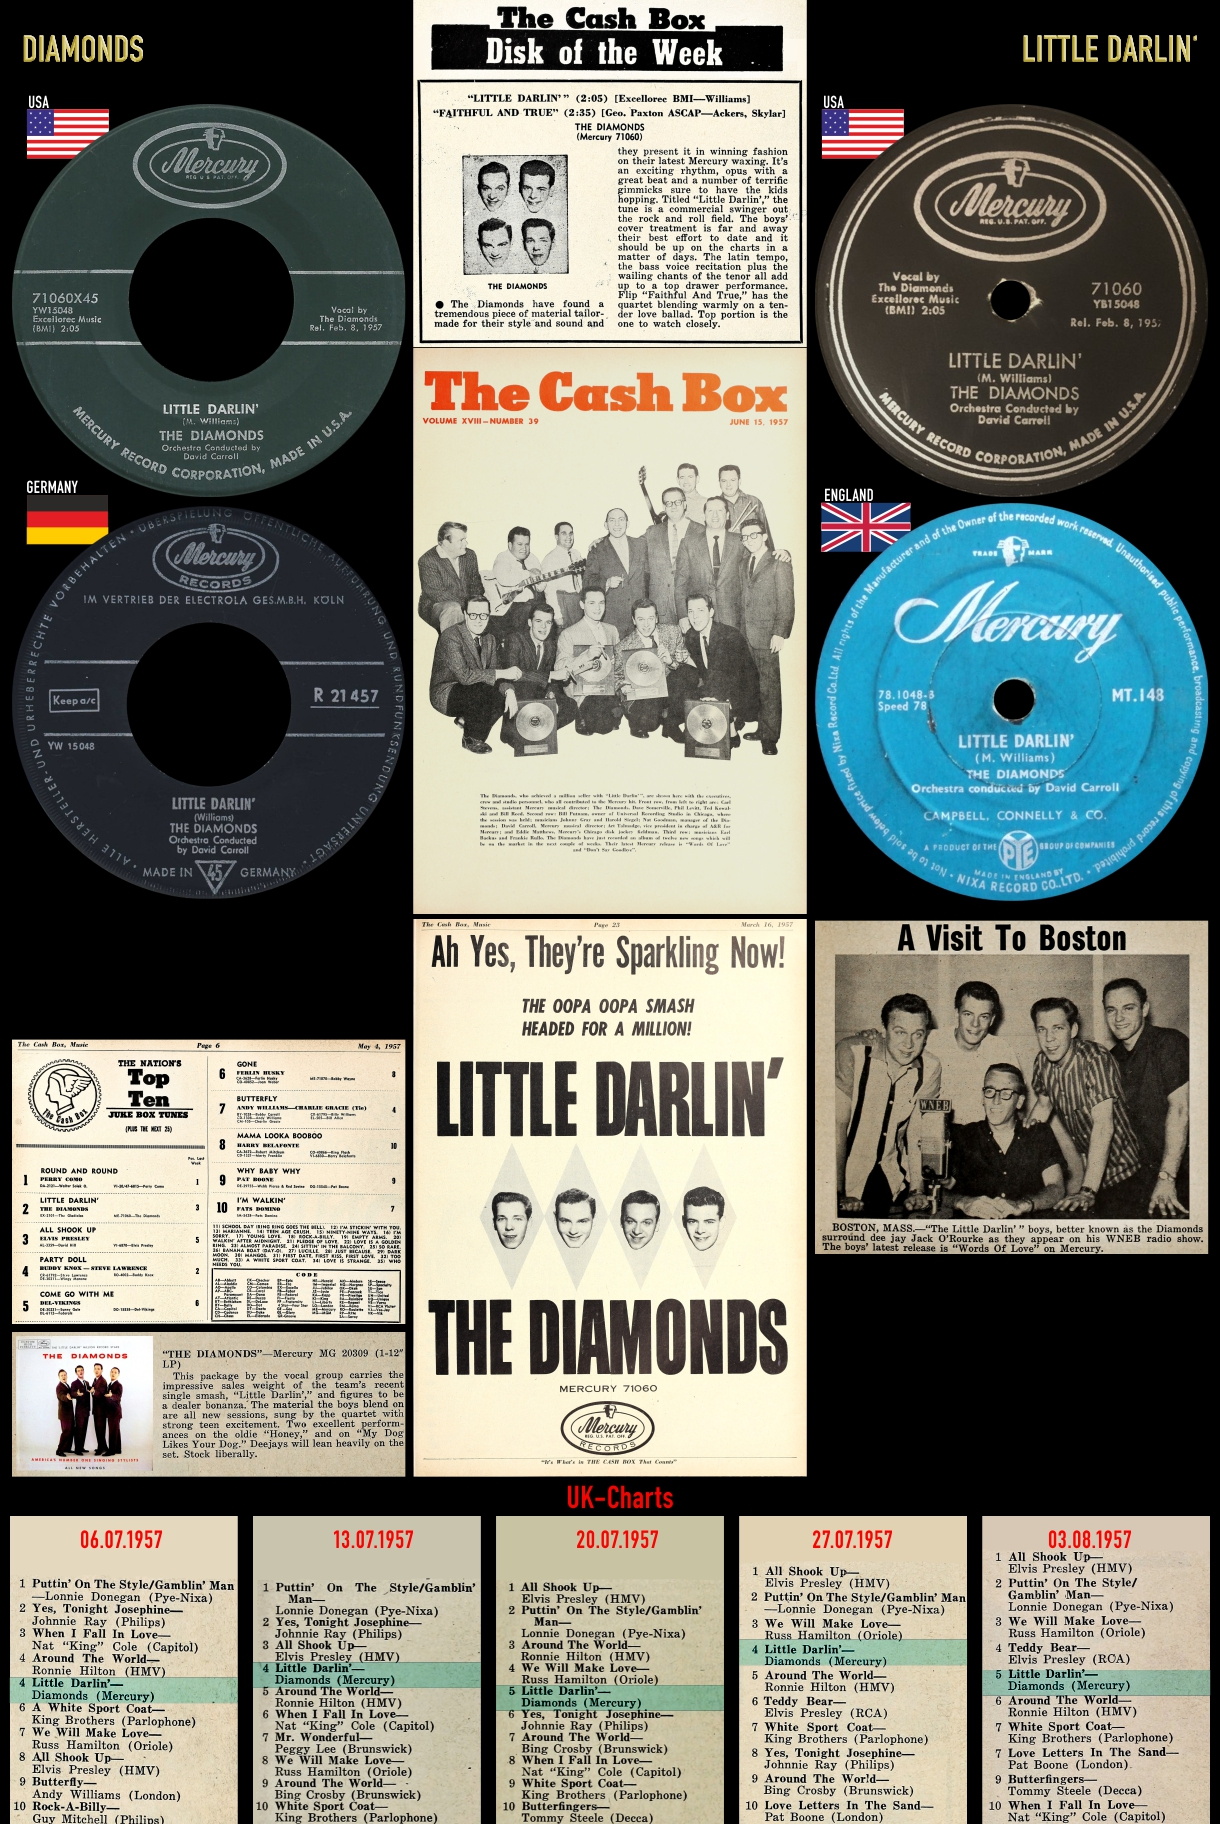 570316_Diamonds_Little Darlin'